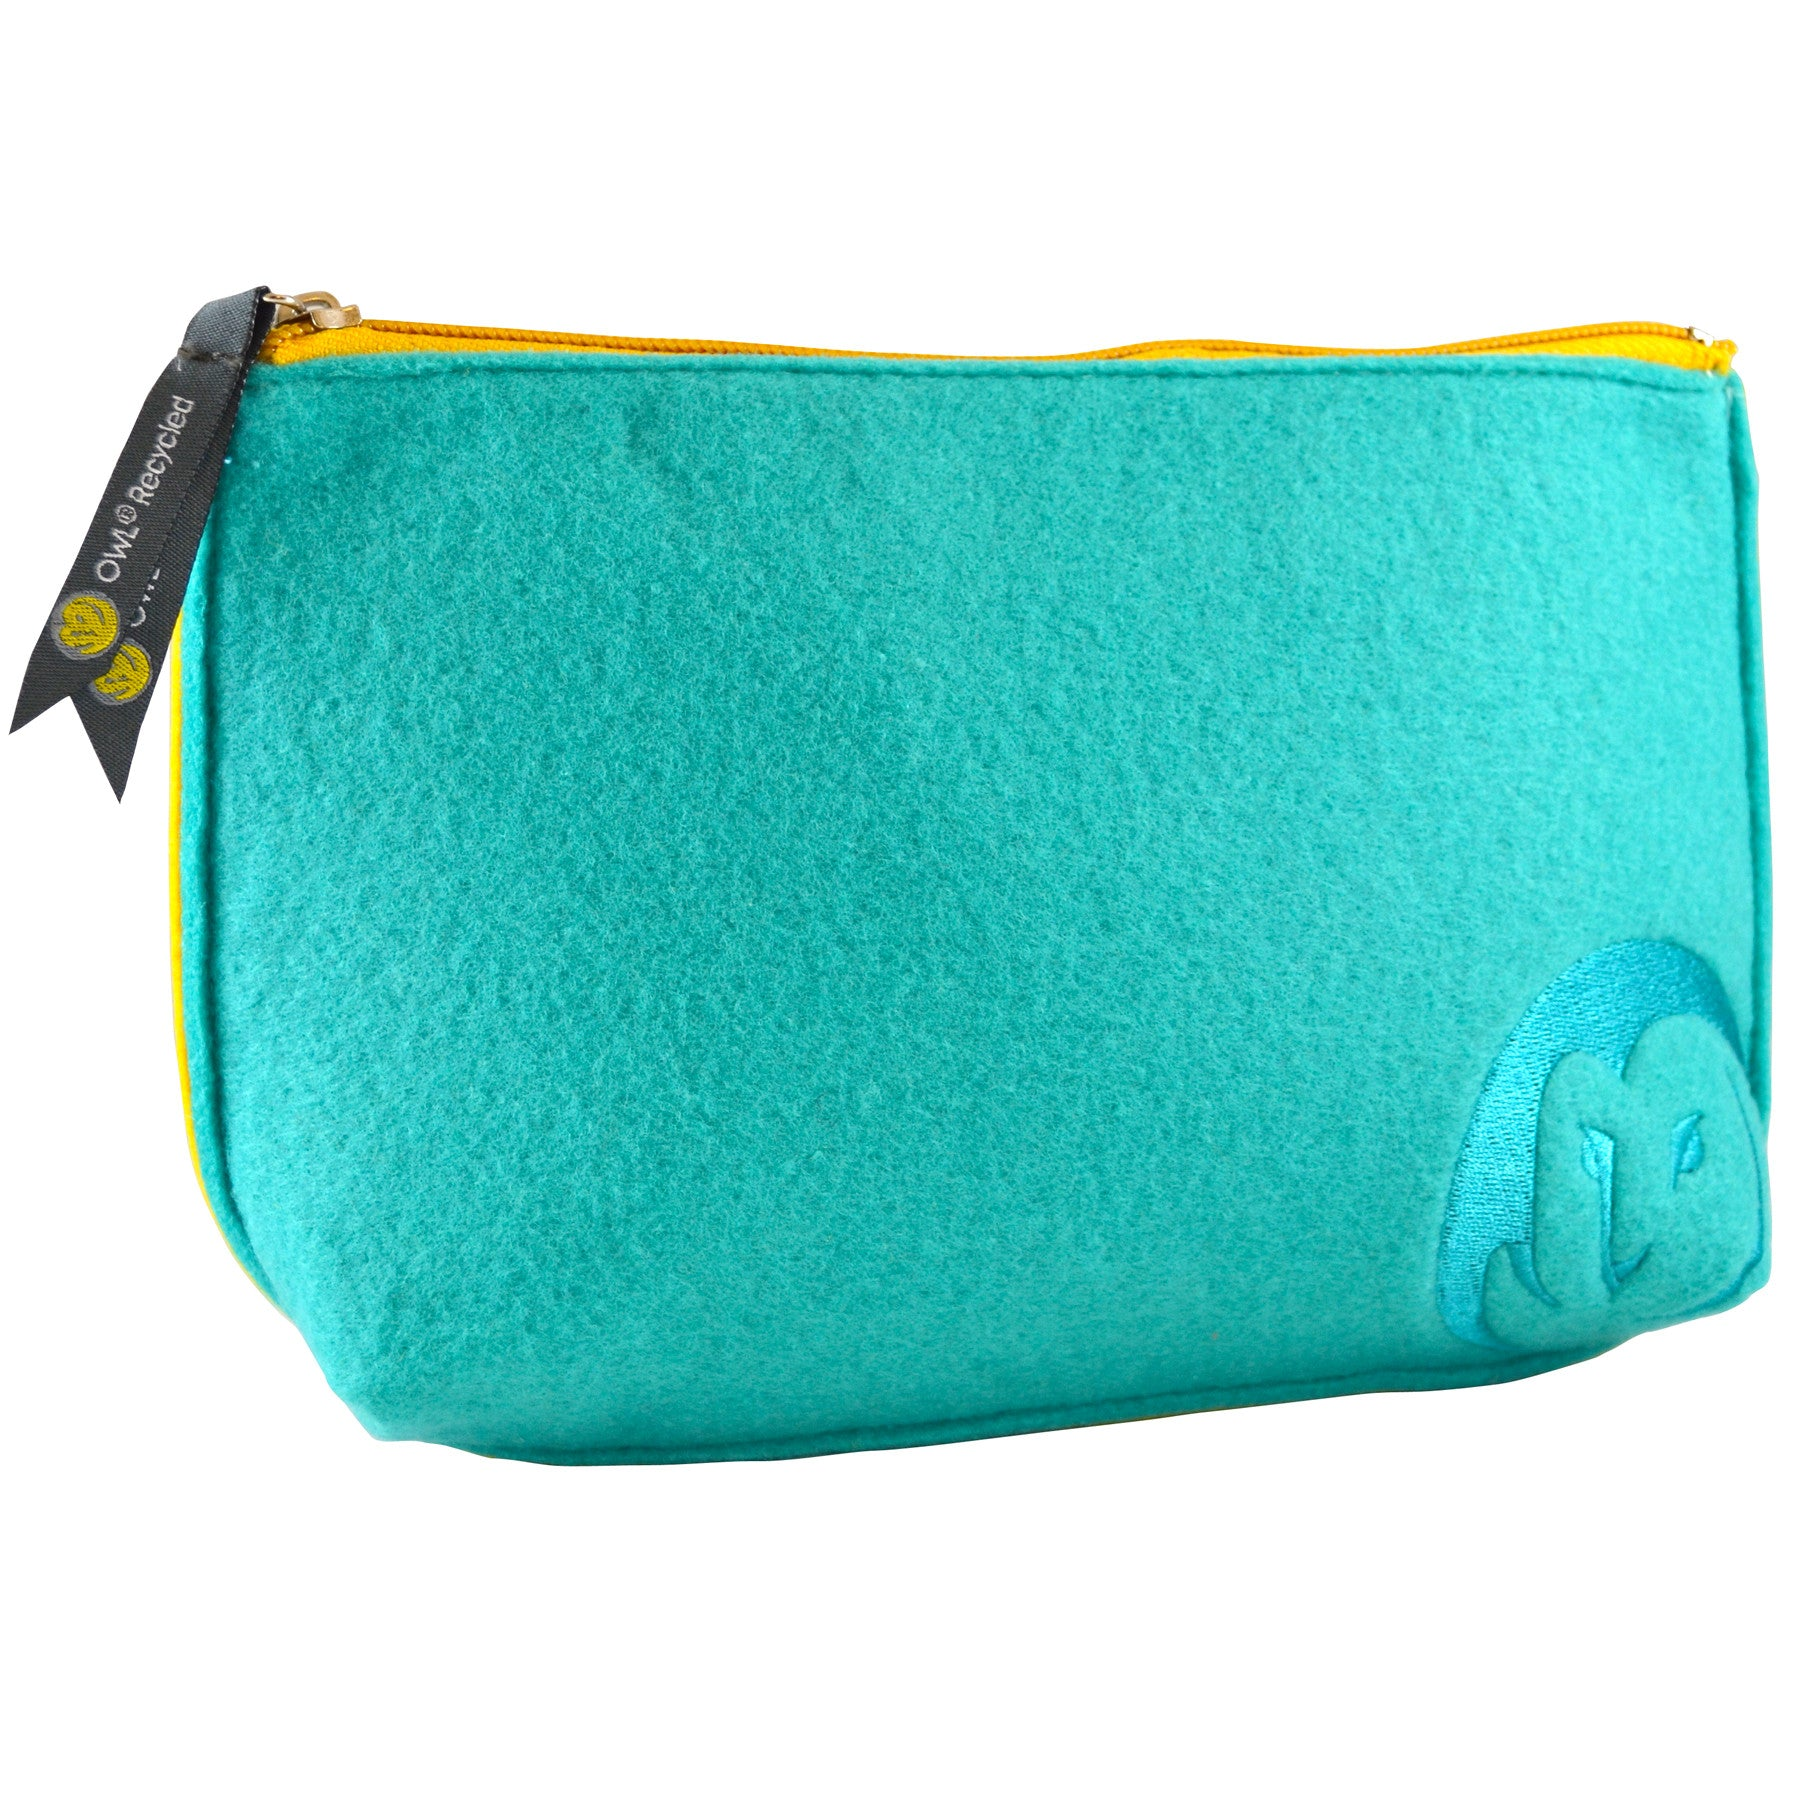 Felt Zip-Top Pouch - Aqua - 100% Recycled Water Bottles